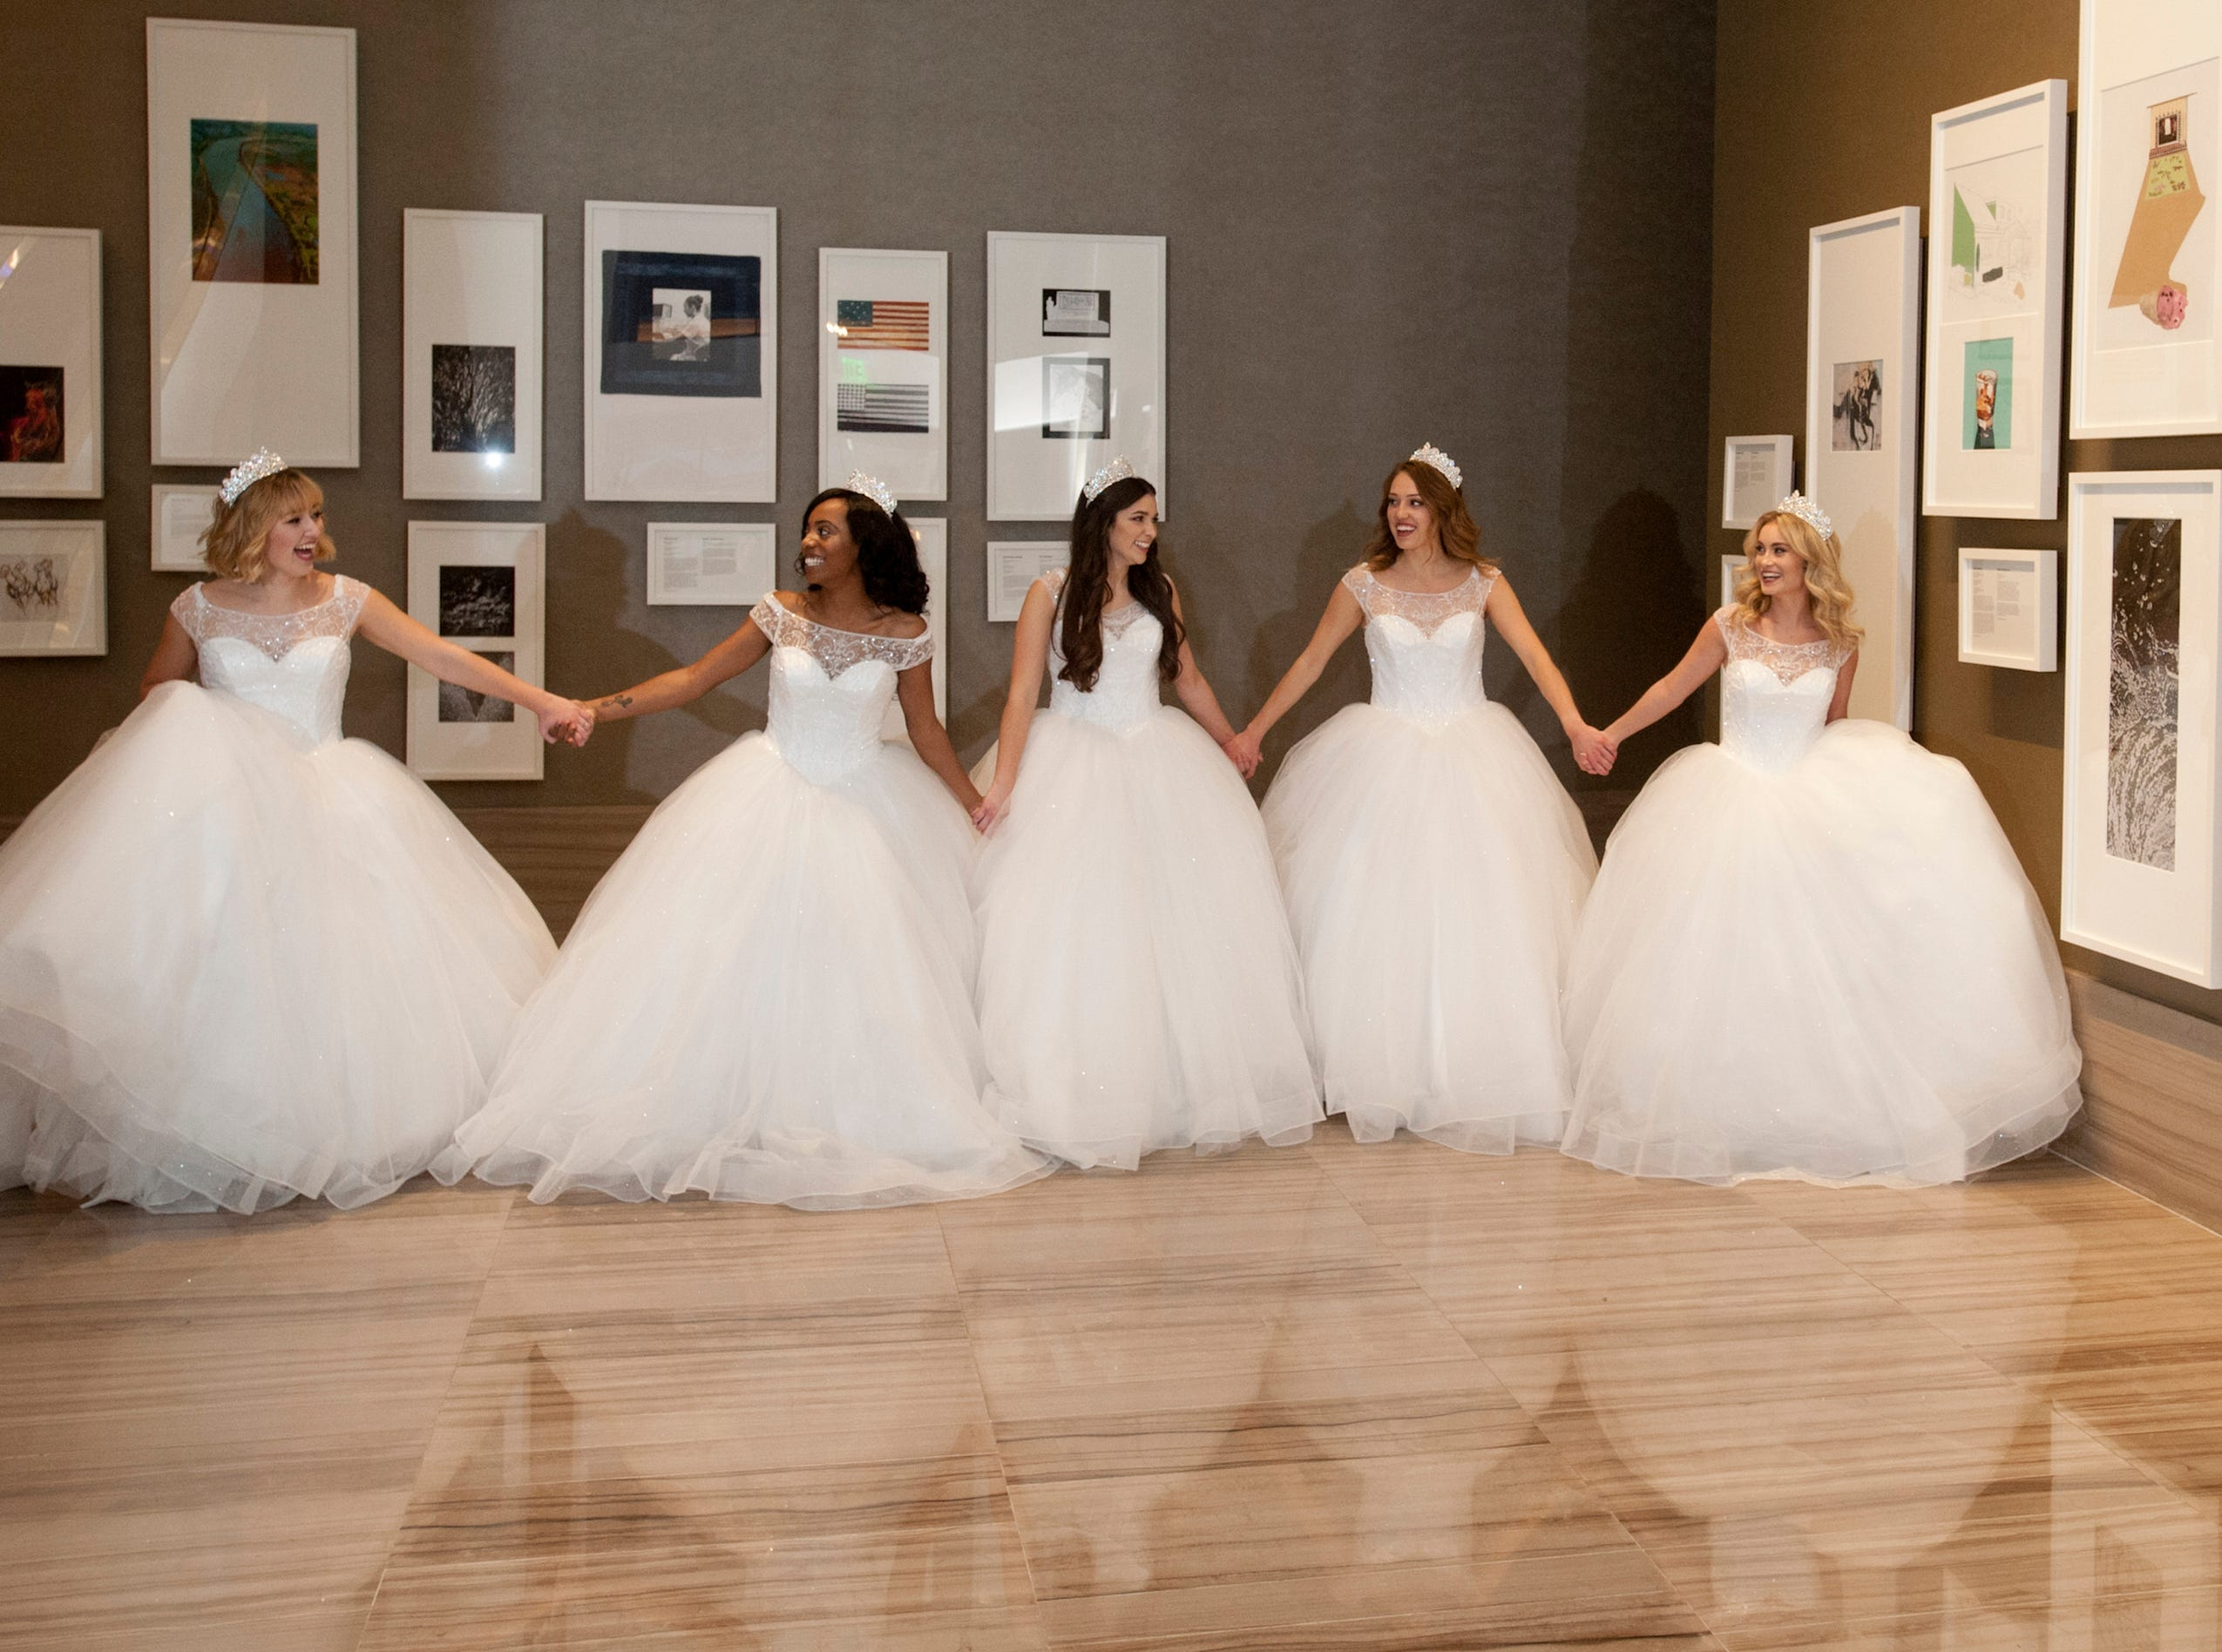 The Kentucky Derby Festival princesses walk together through the Omni Louisville Hotel. L-R: Kelsey Sutton, Brittany Patillo, Mary Baker, Elizabeth Seewer and Allison Spears. 06 January 2019